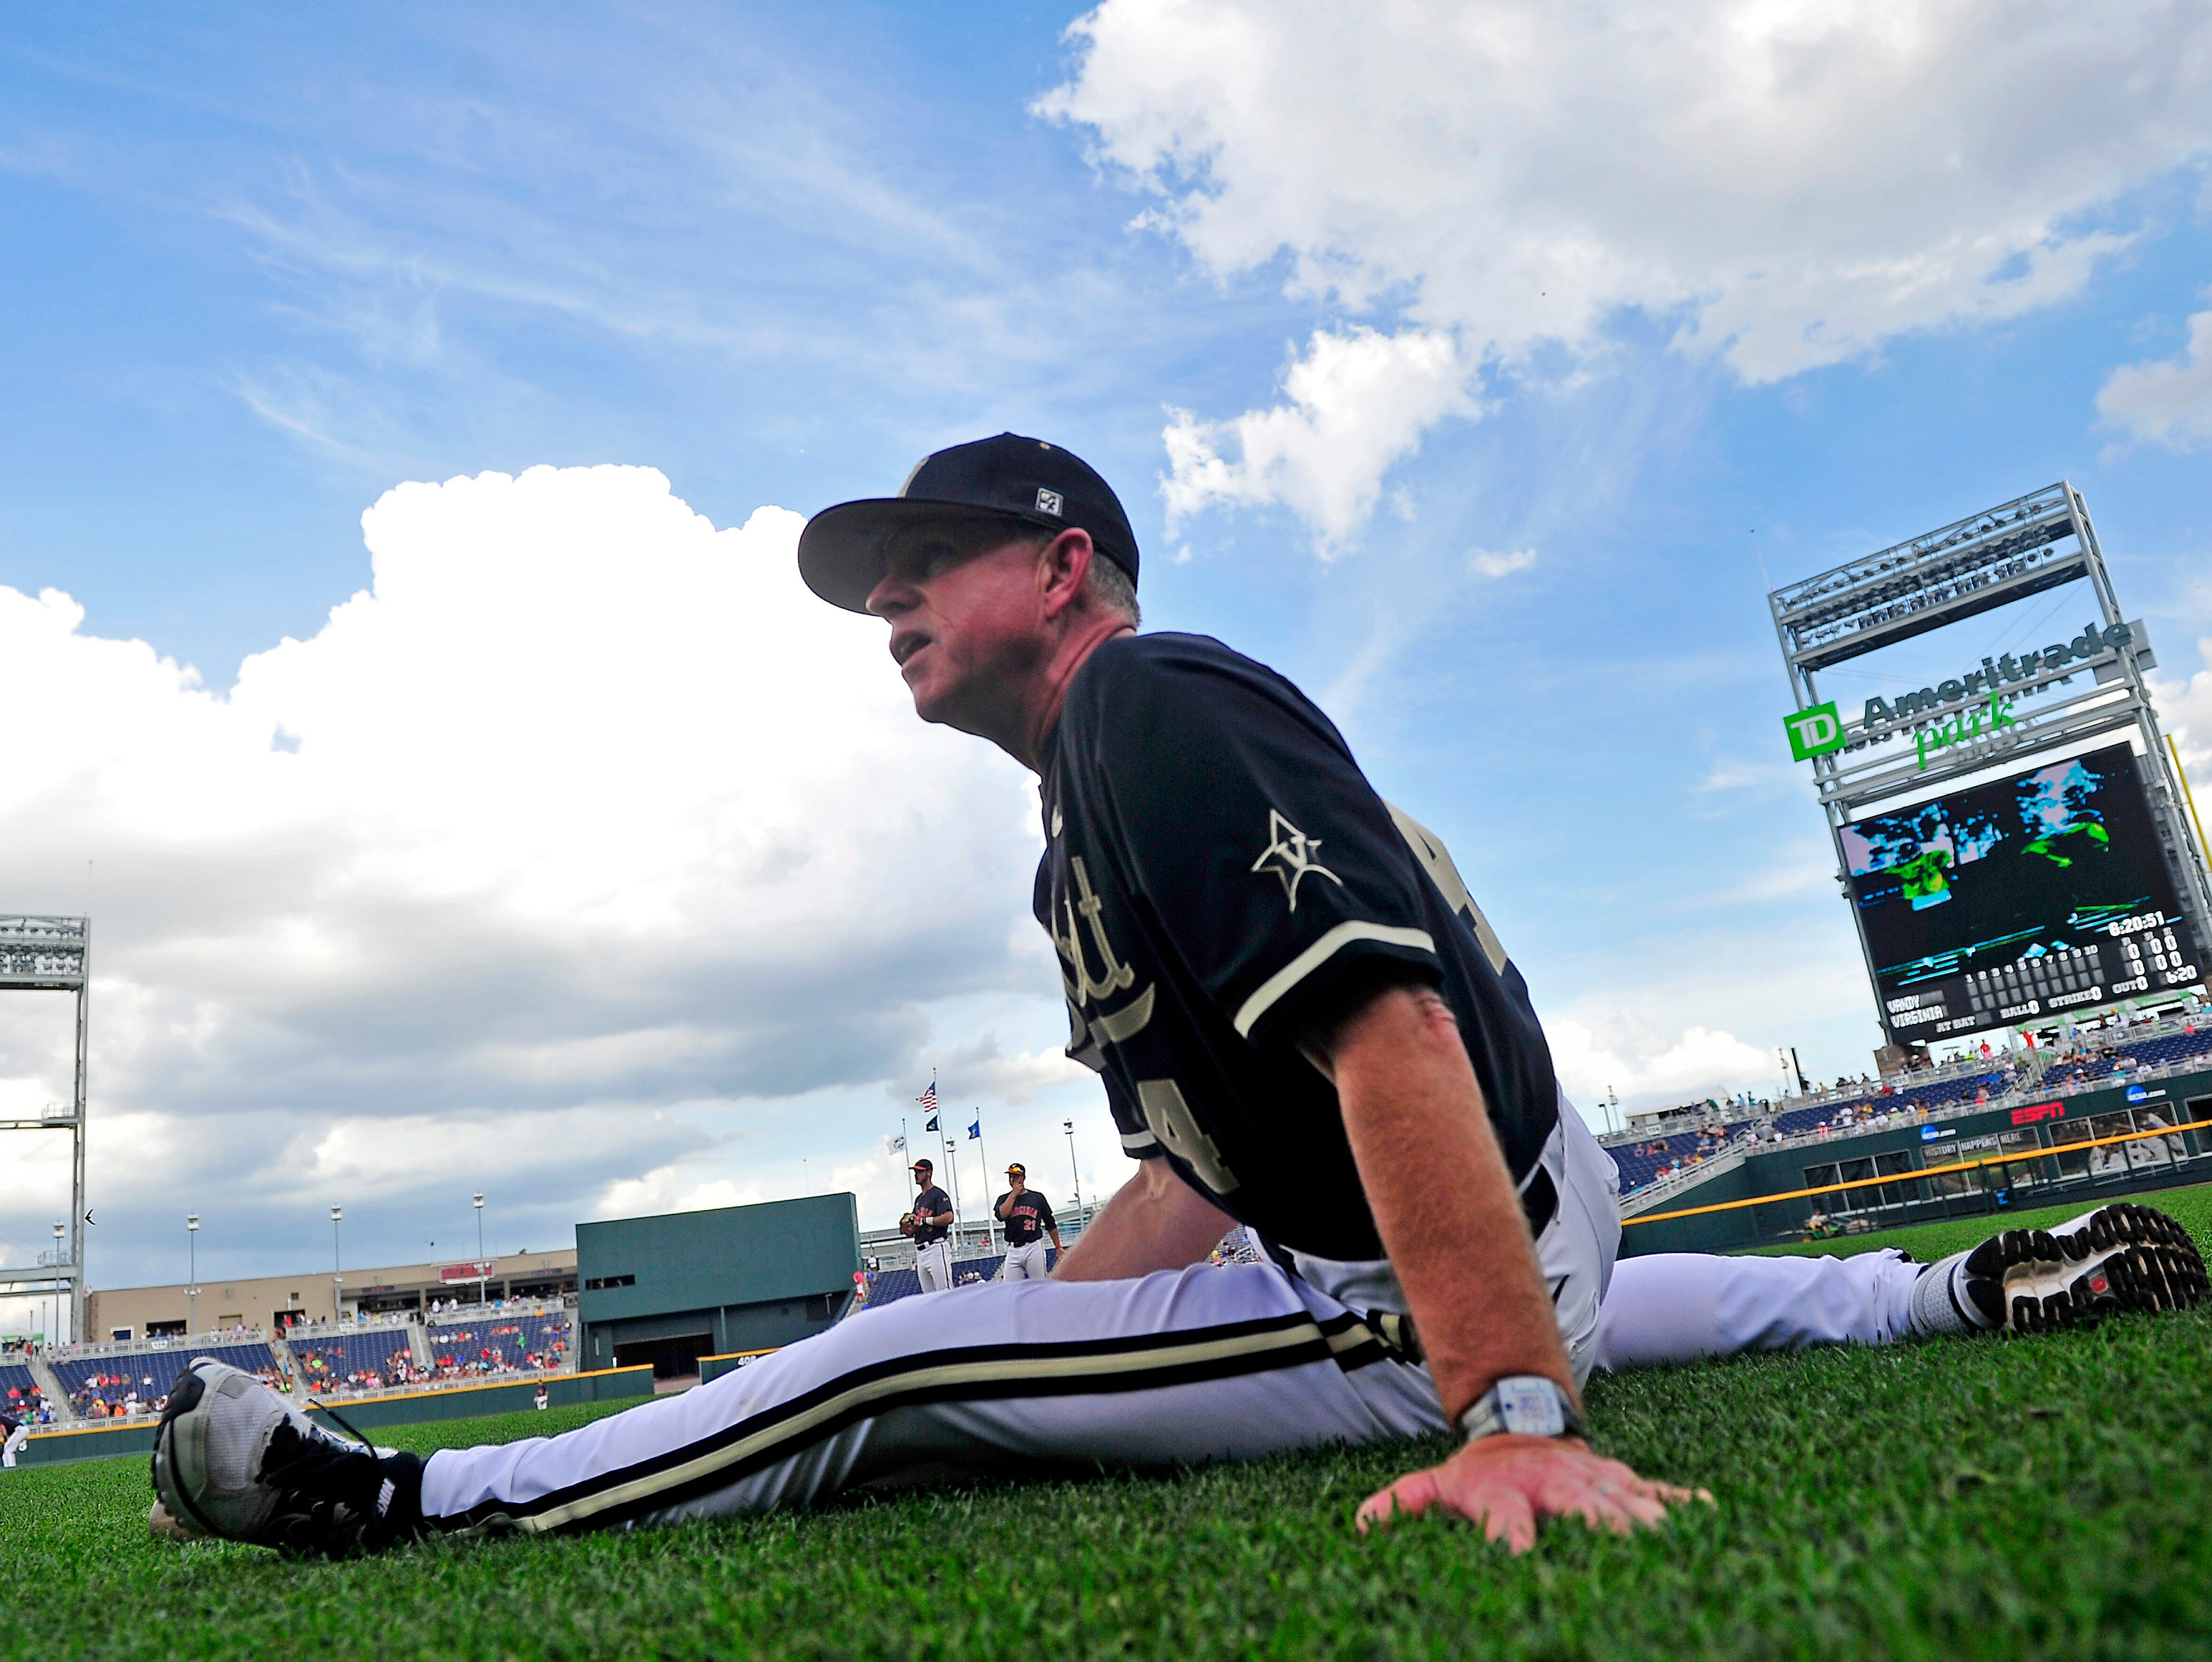 Vanderbilt Head Coach Tim Corbin stretches prior to the game 3 against Virginia at the College World Series at TD Ameritrade Park in Omaha, Neb., Wednesday, June 25, 2014.